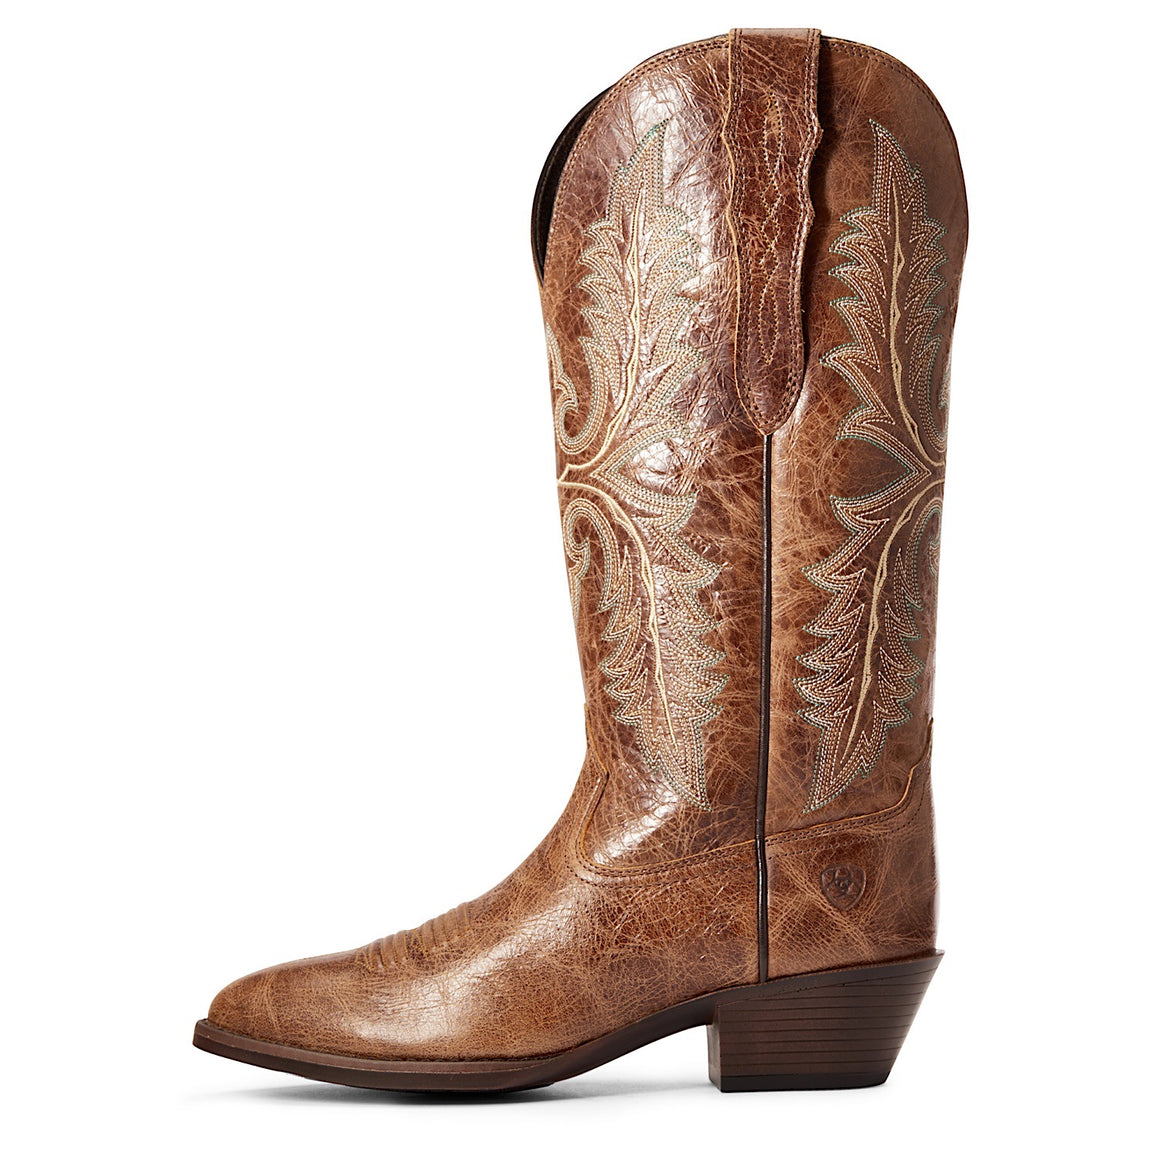 Ariat Women's Heritage Elastic Calf Western Boot Dark Tan